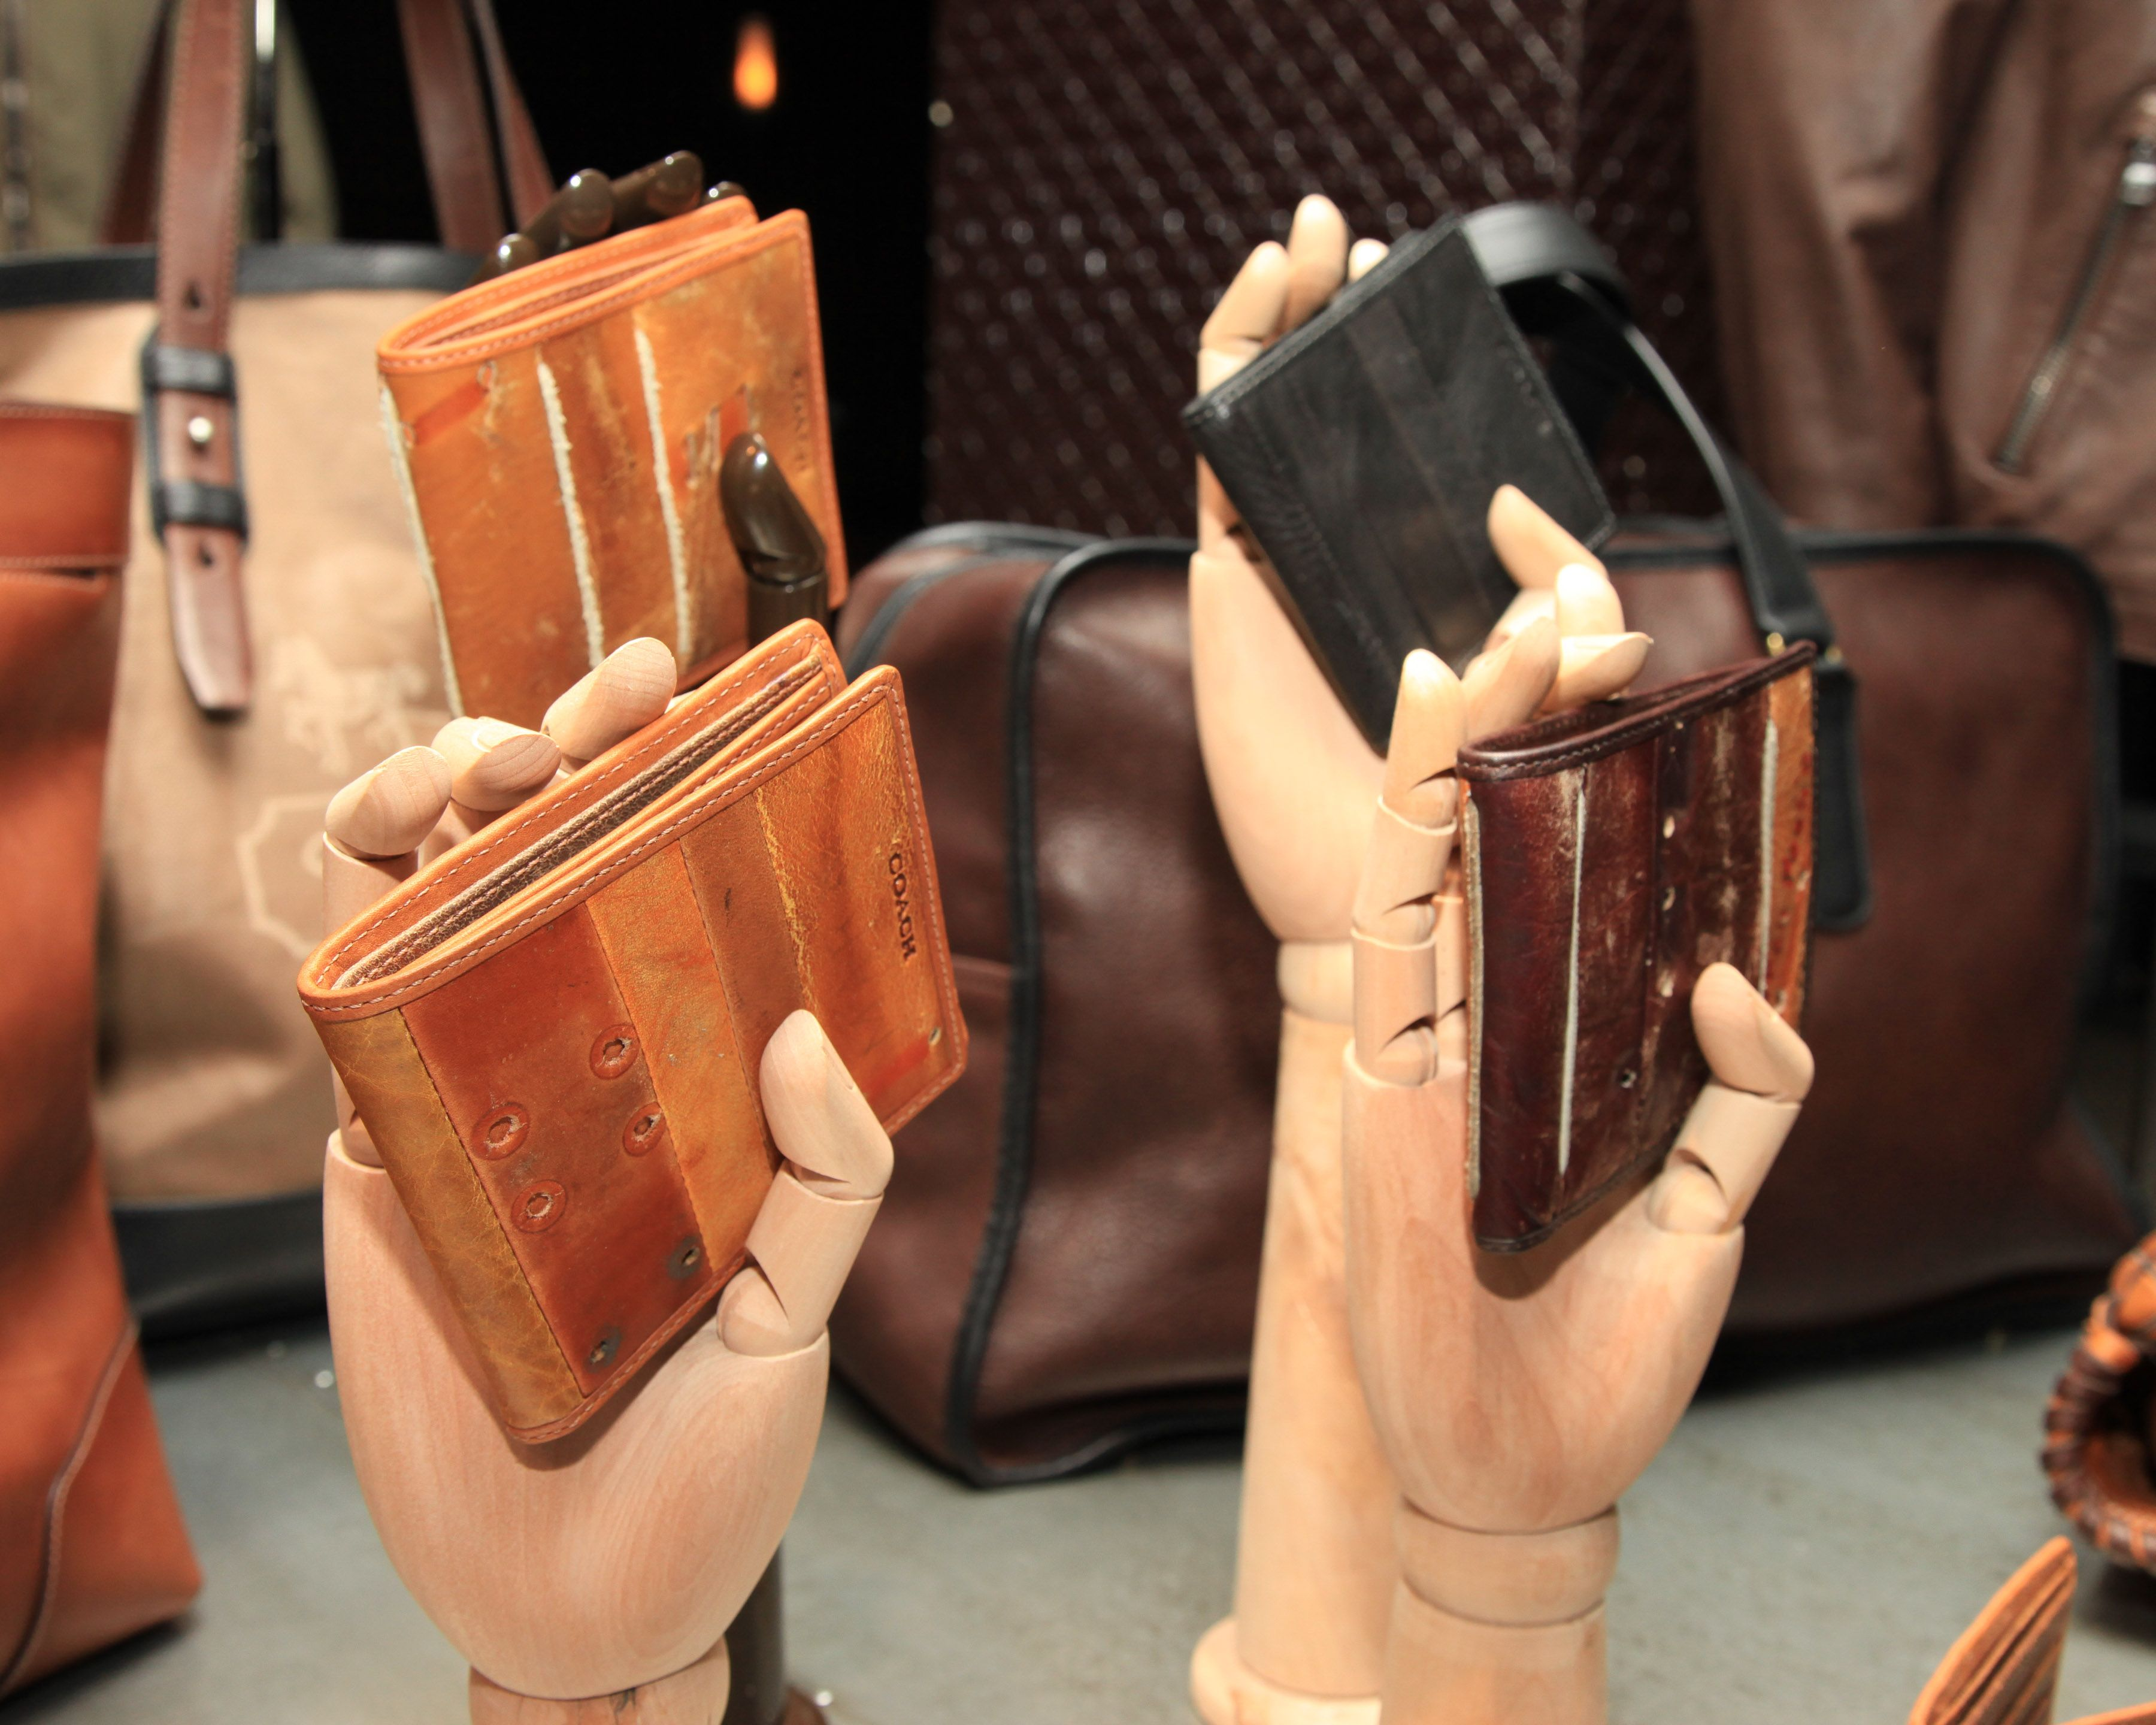 Recycled baseball glove wallet - Baseball Glove Wallets Yes Please